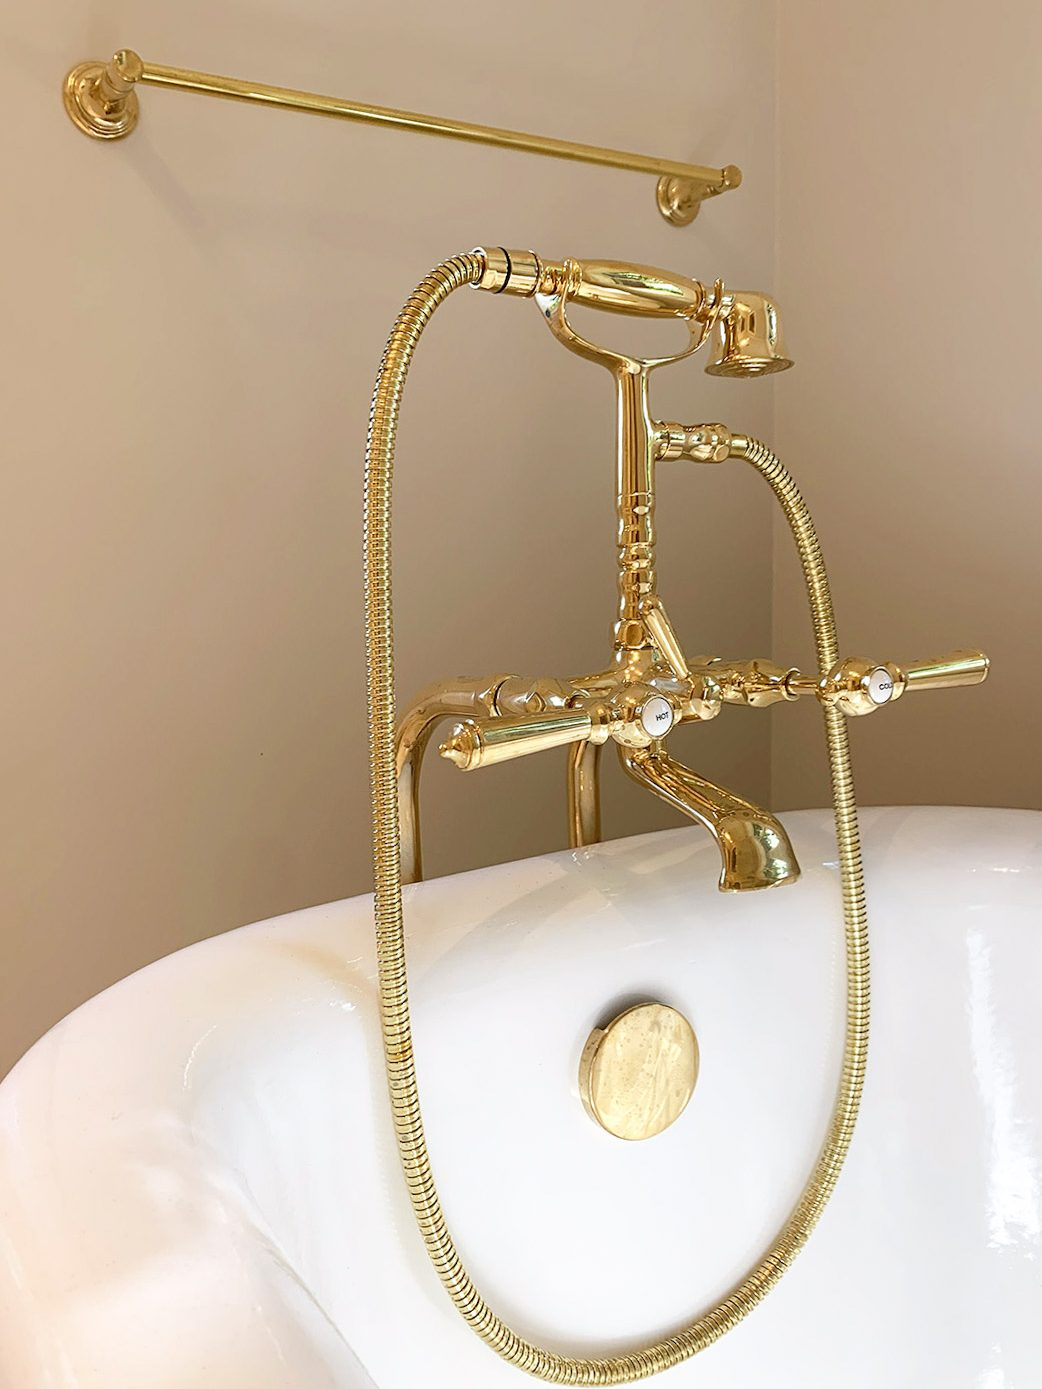 Unlacquered brass fixtures in a soaking tub